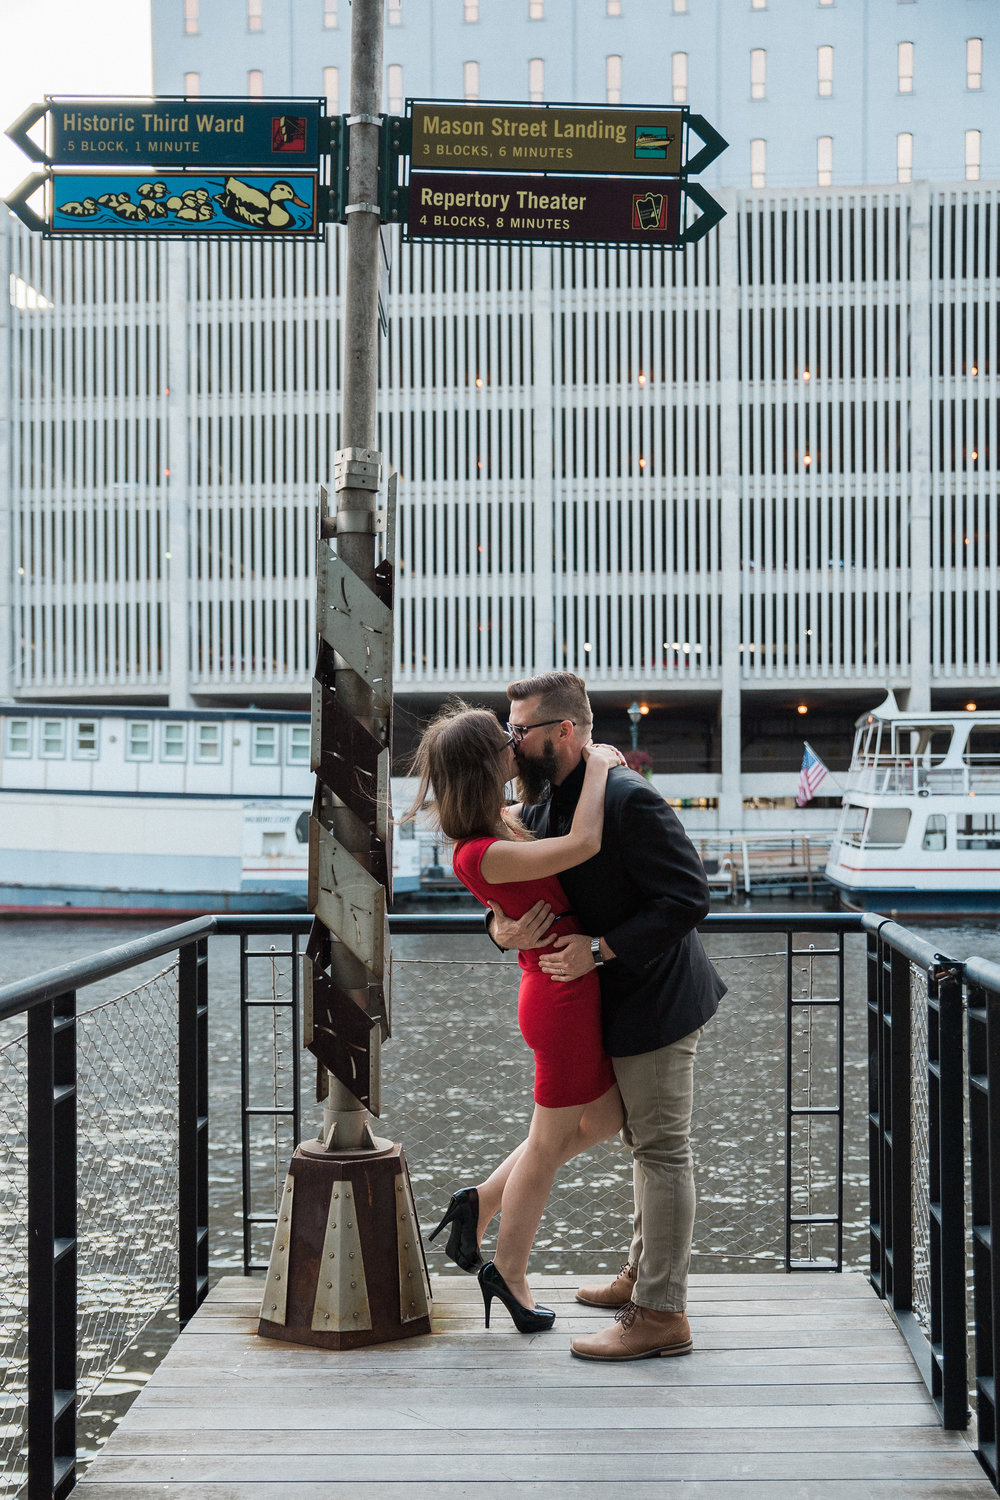 Man dips his fiance back as he kisses her on a dock under a sign to Historic Third Ward, Mason Street Landing, and Repertory Theater.